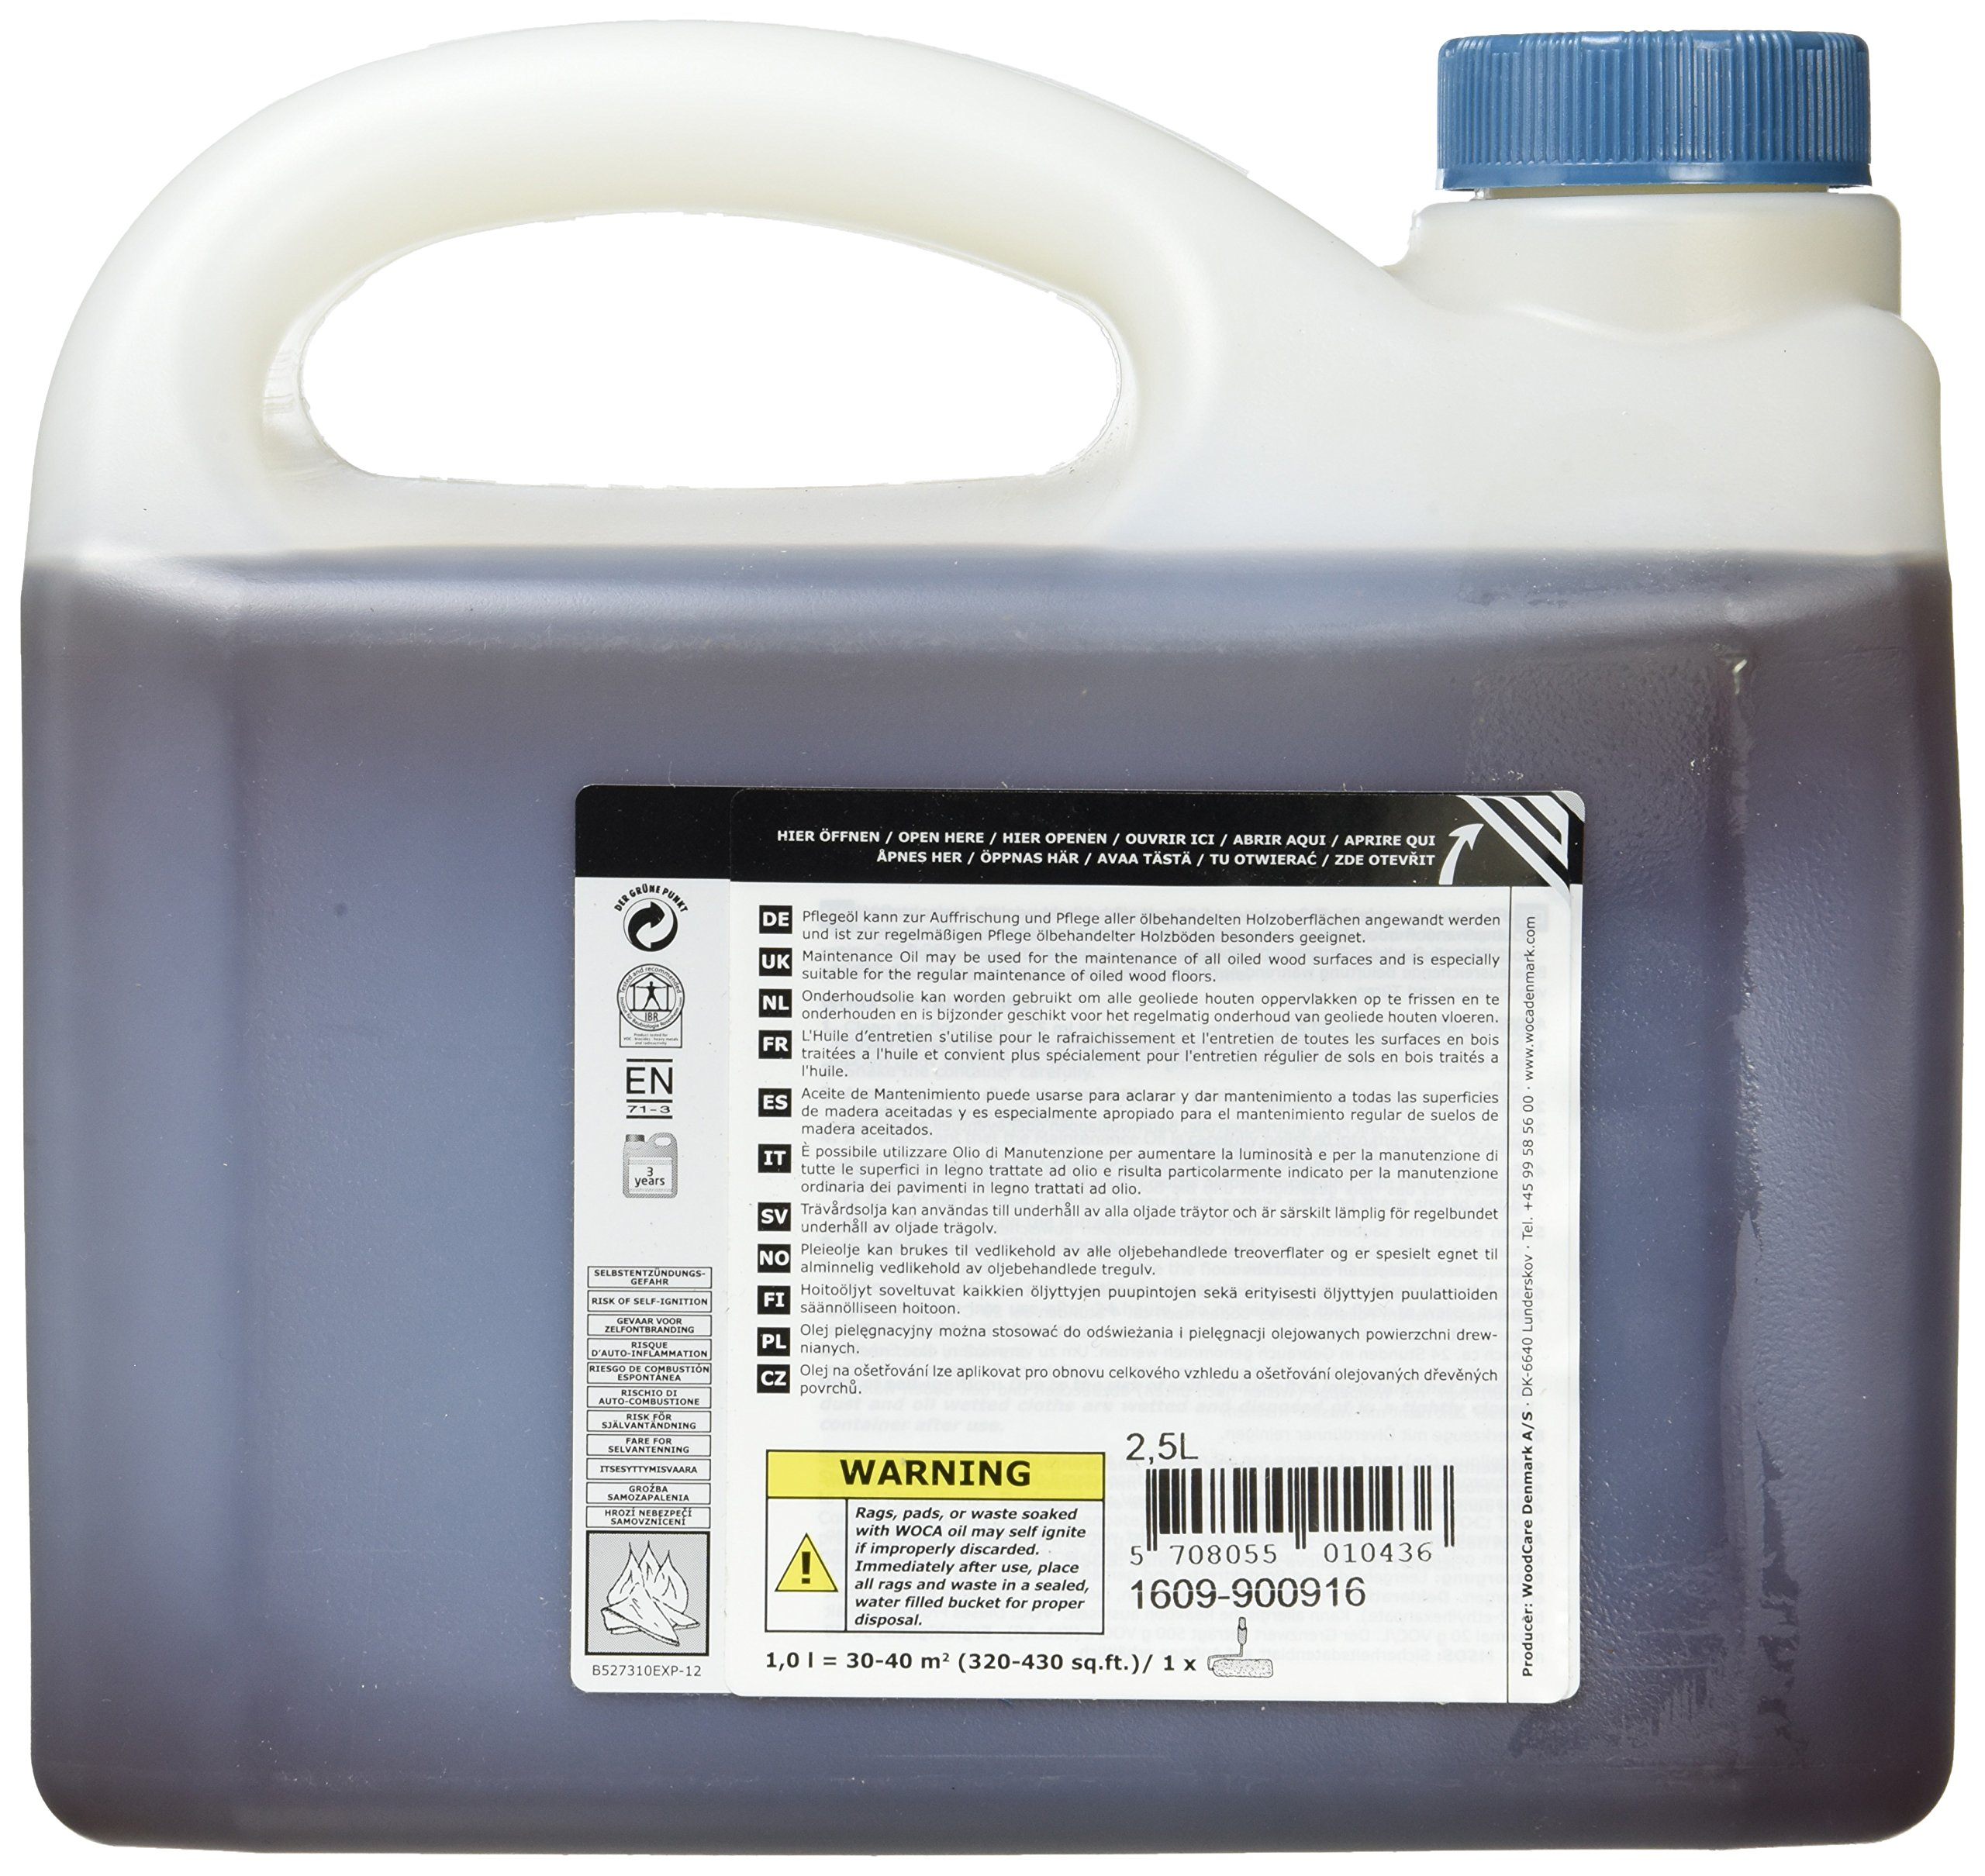 Woca Maintenance Oil - Natural (2.5 liter) by Woca (Image #2)